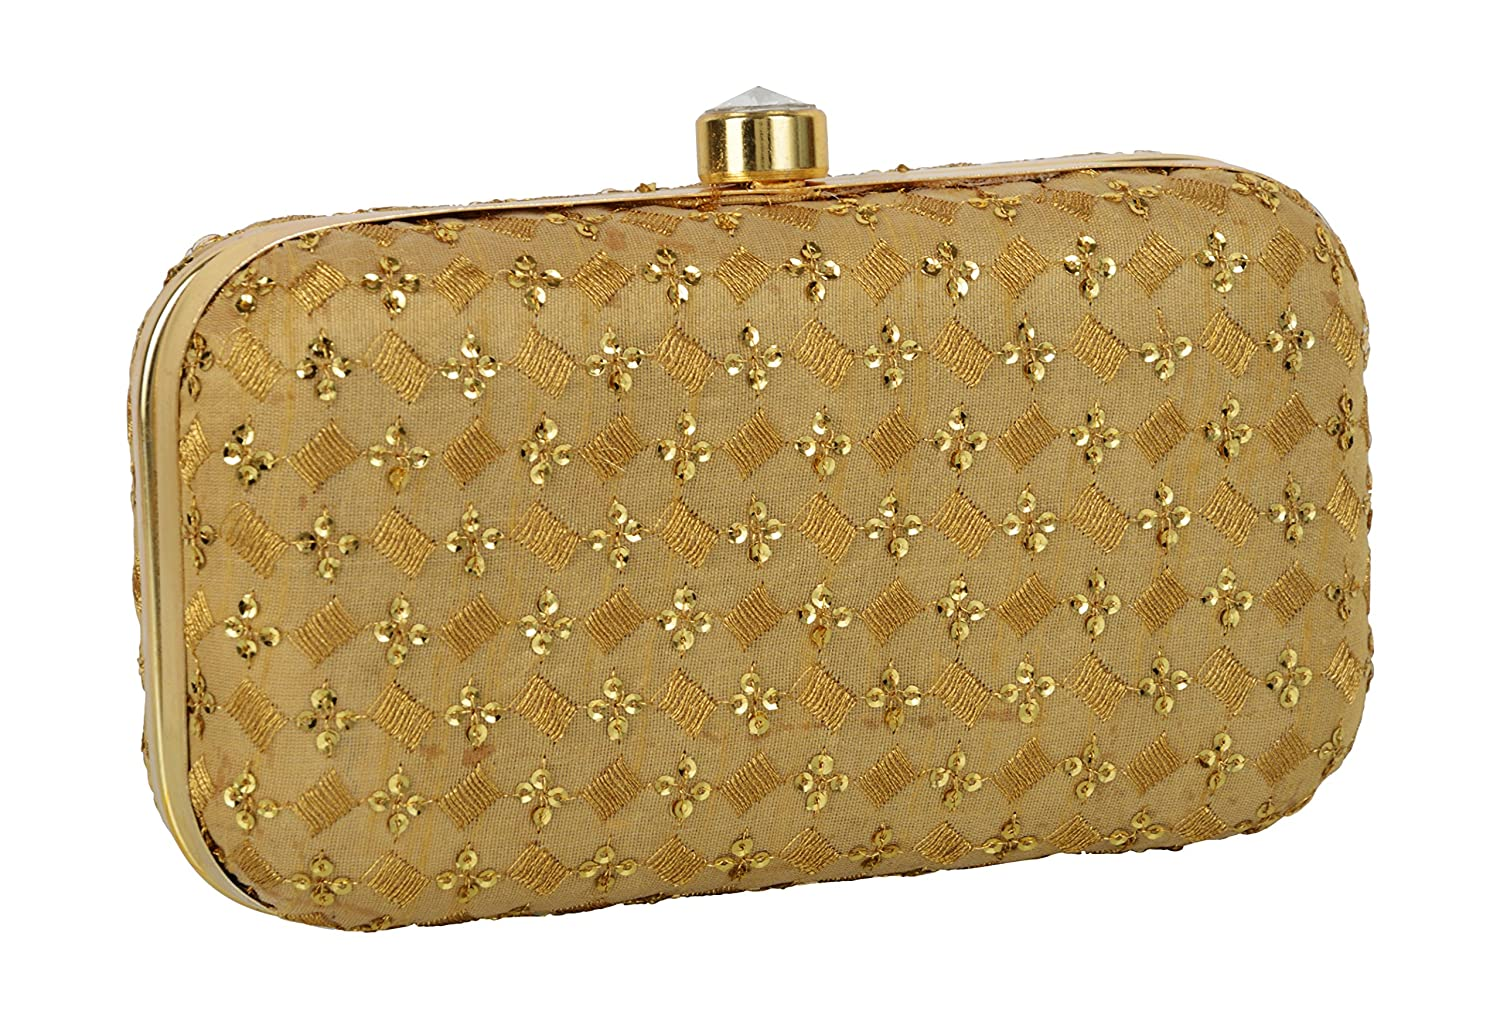 Tooba Women s Handicraft Hand Embroidered Velvet Box Clutch (Beige Gold)   Amazon.in  Shoes   Handbags 47c4652f085f2